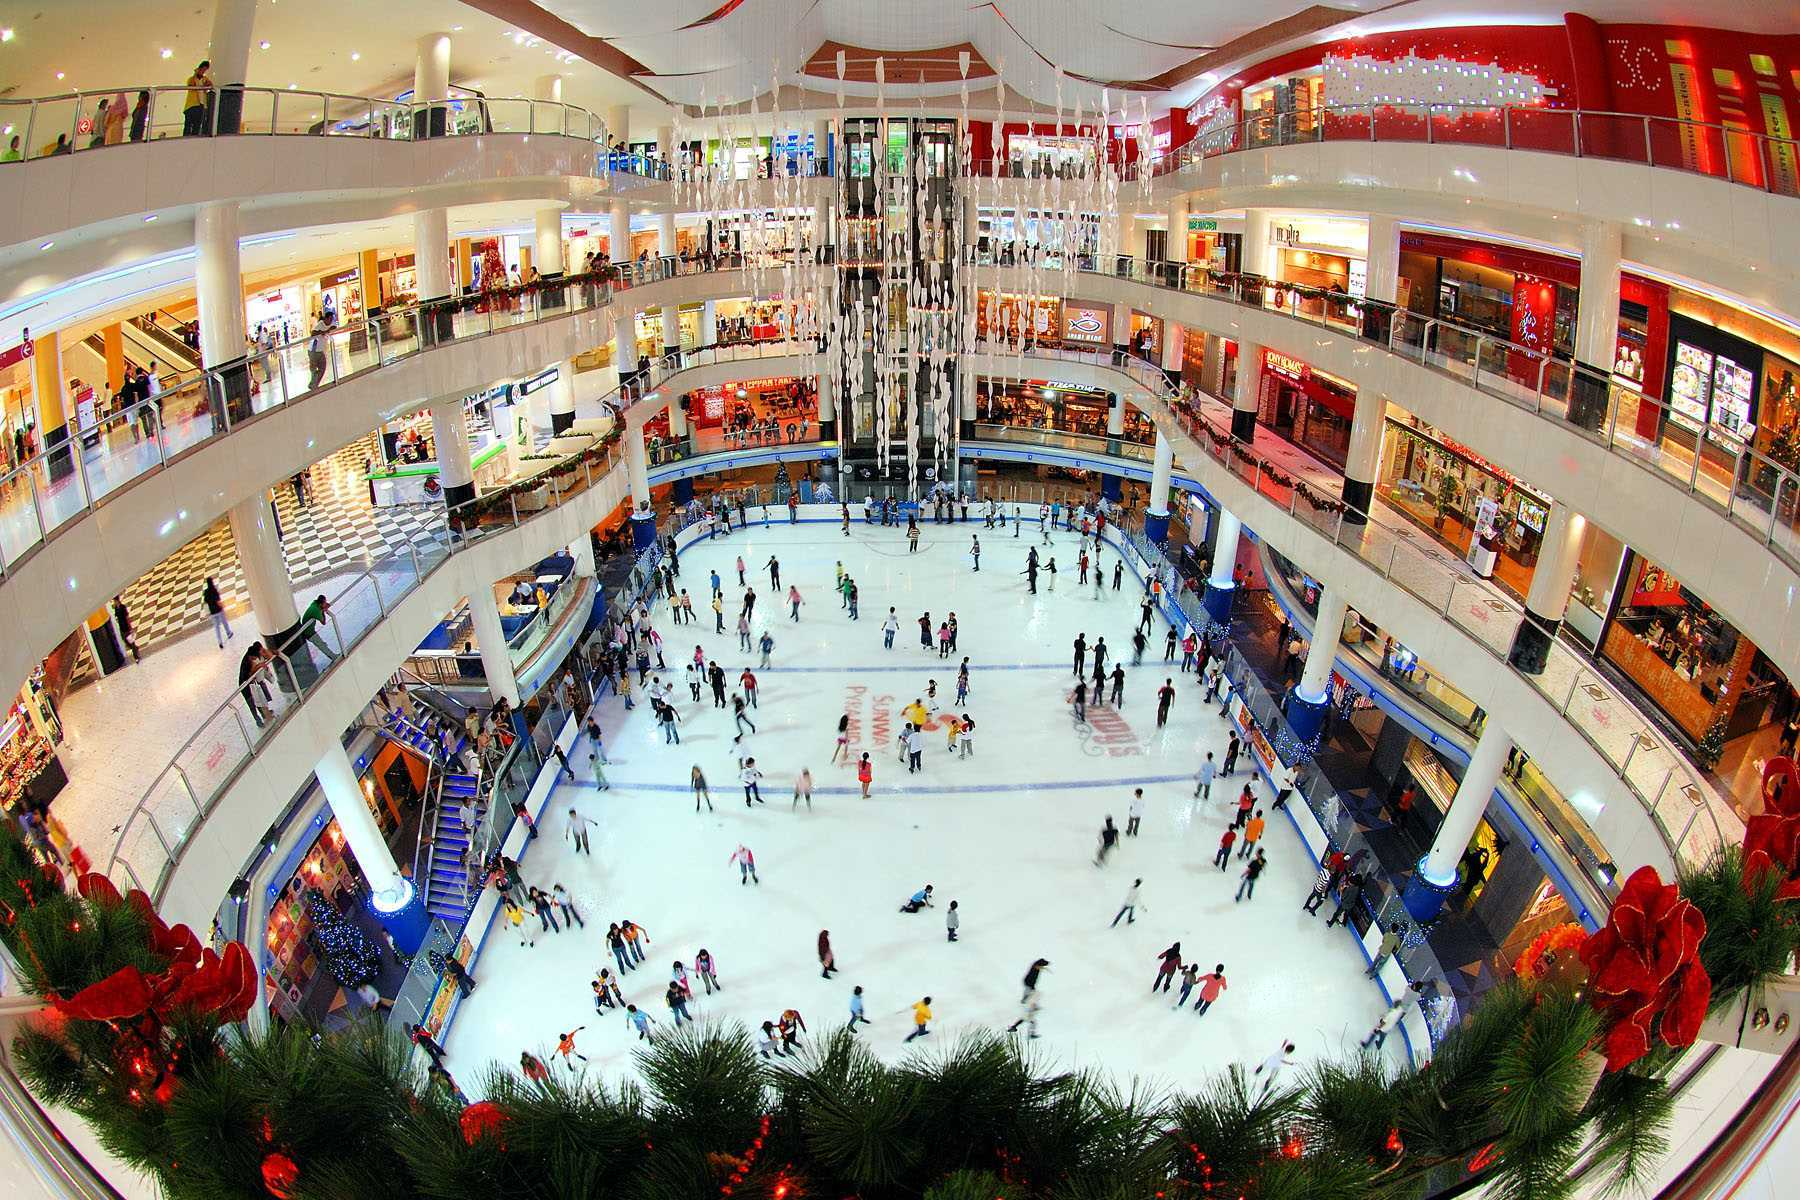 Malaysia First Ice Skating Rink, Sunway Pyramid Ice Skating Featured Image